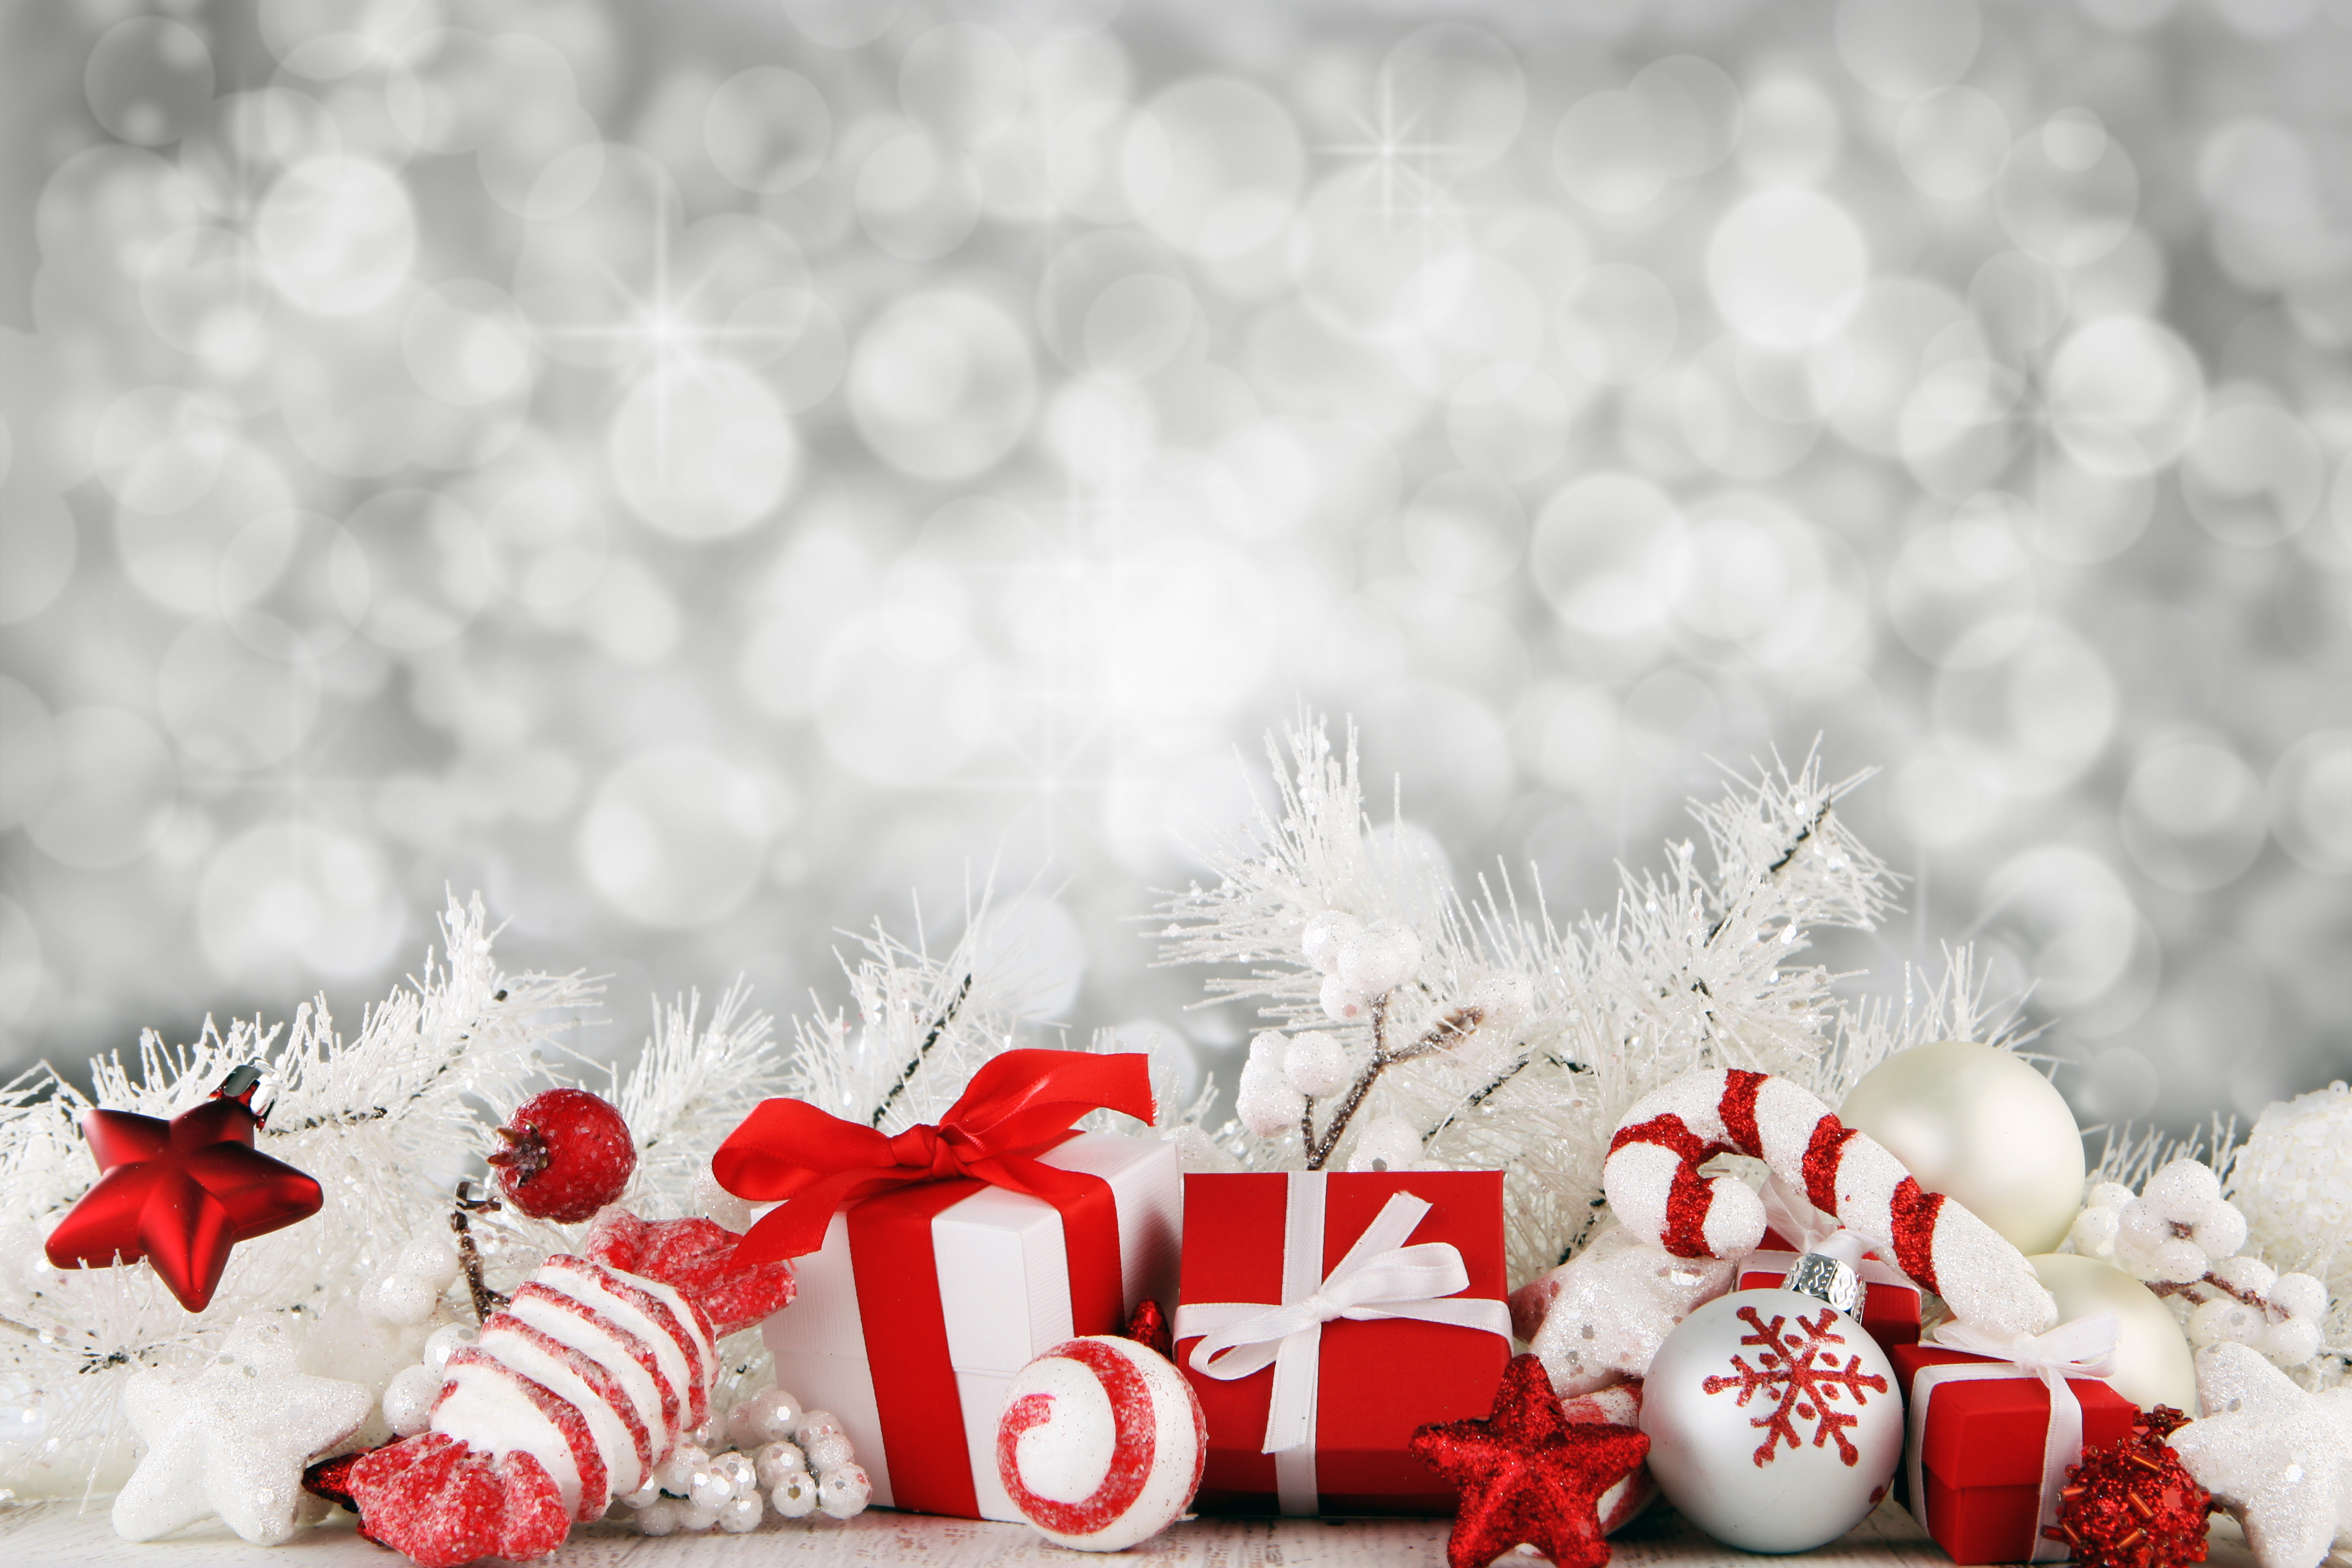 Christmas Background   PowerPoint Backgrounds for PowerPoint 3888x2592